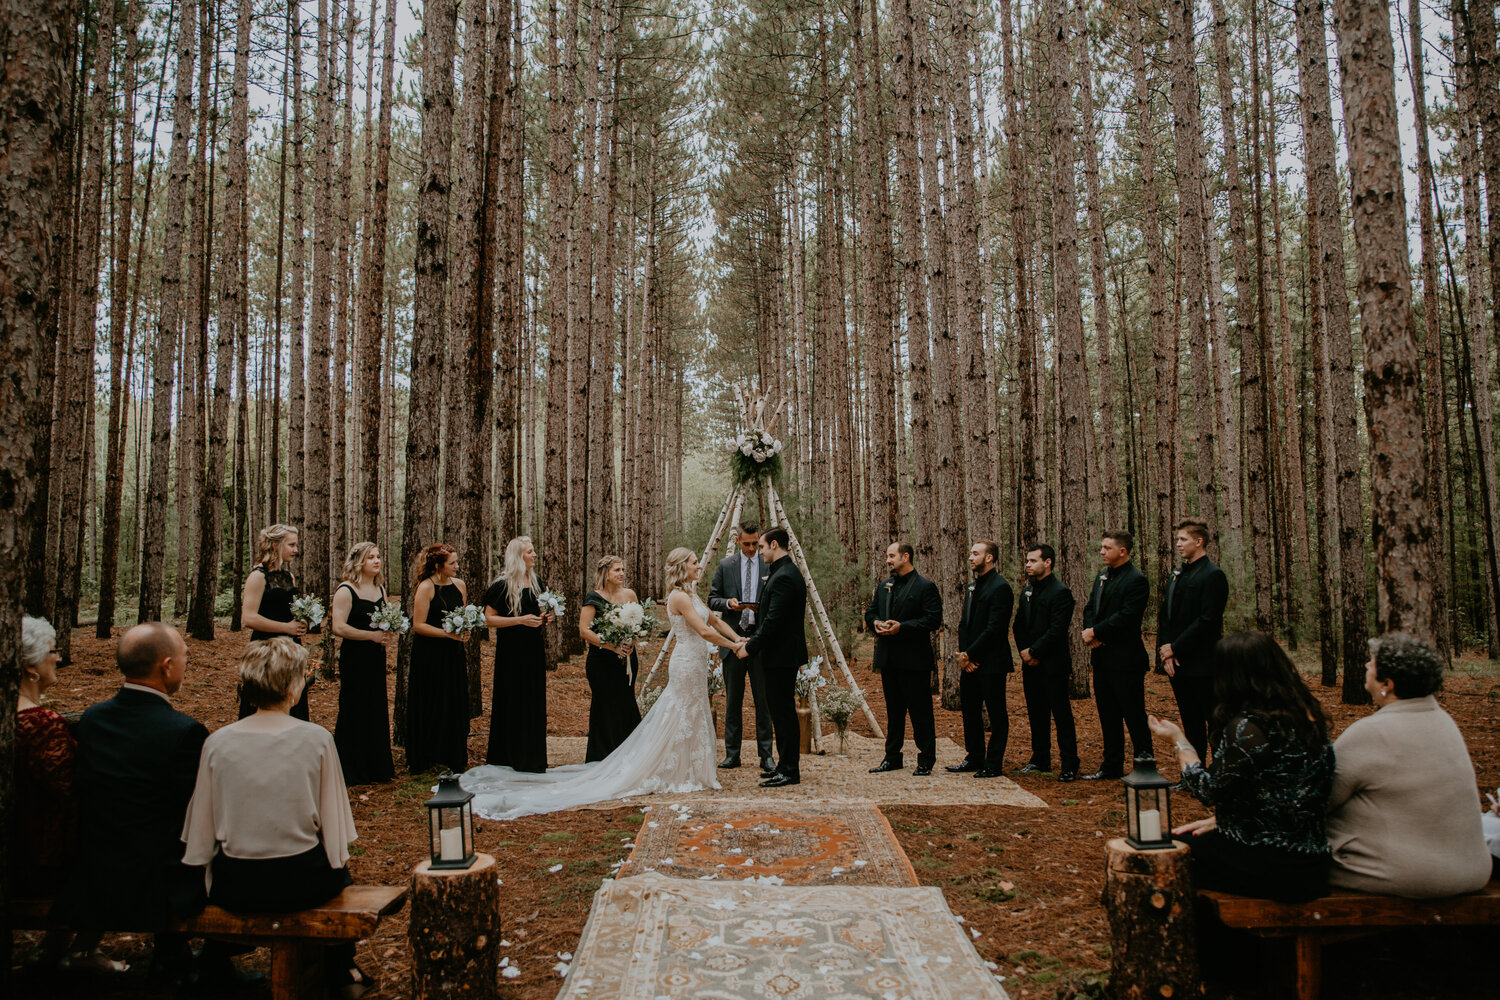 Meredith Washburn Chicago Il Wedding Elopement And Adventure Photographer Romantic Boho Chic Wisconsin Forest Wedding Their family and friends gathered outside of madison, wisconsin to celebrate their love. meredith washburn